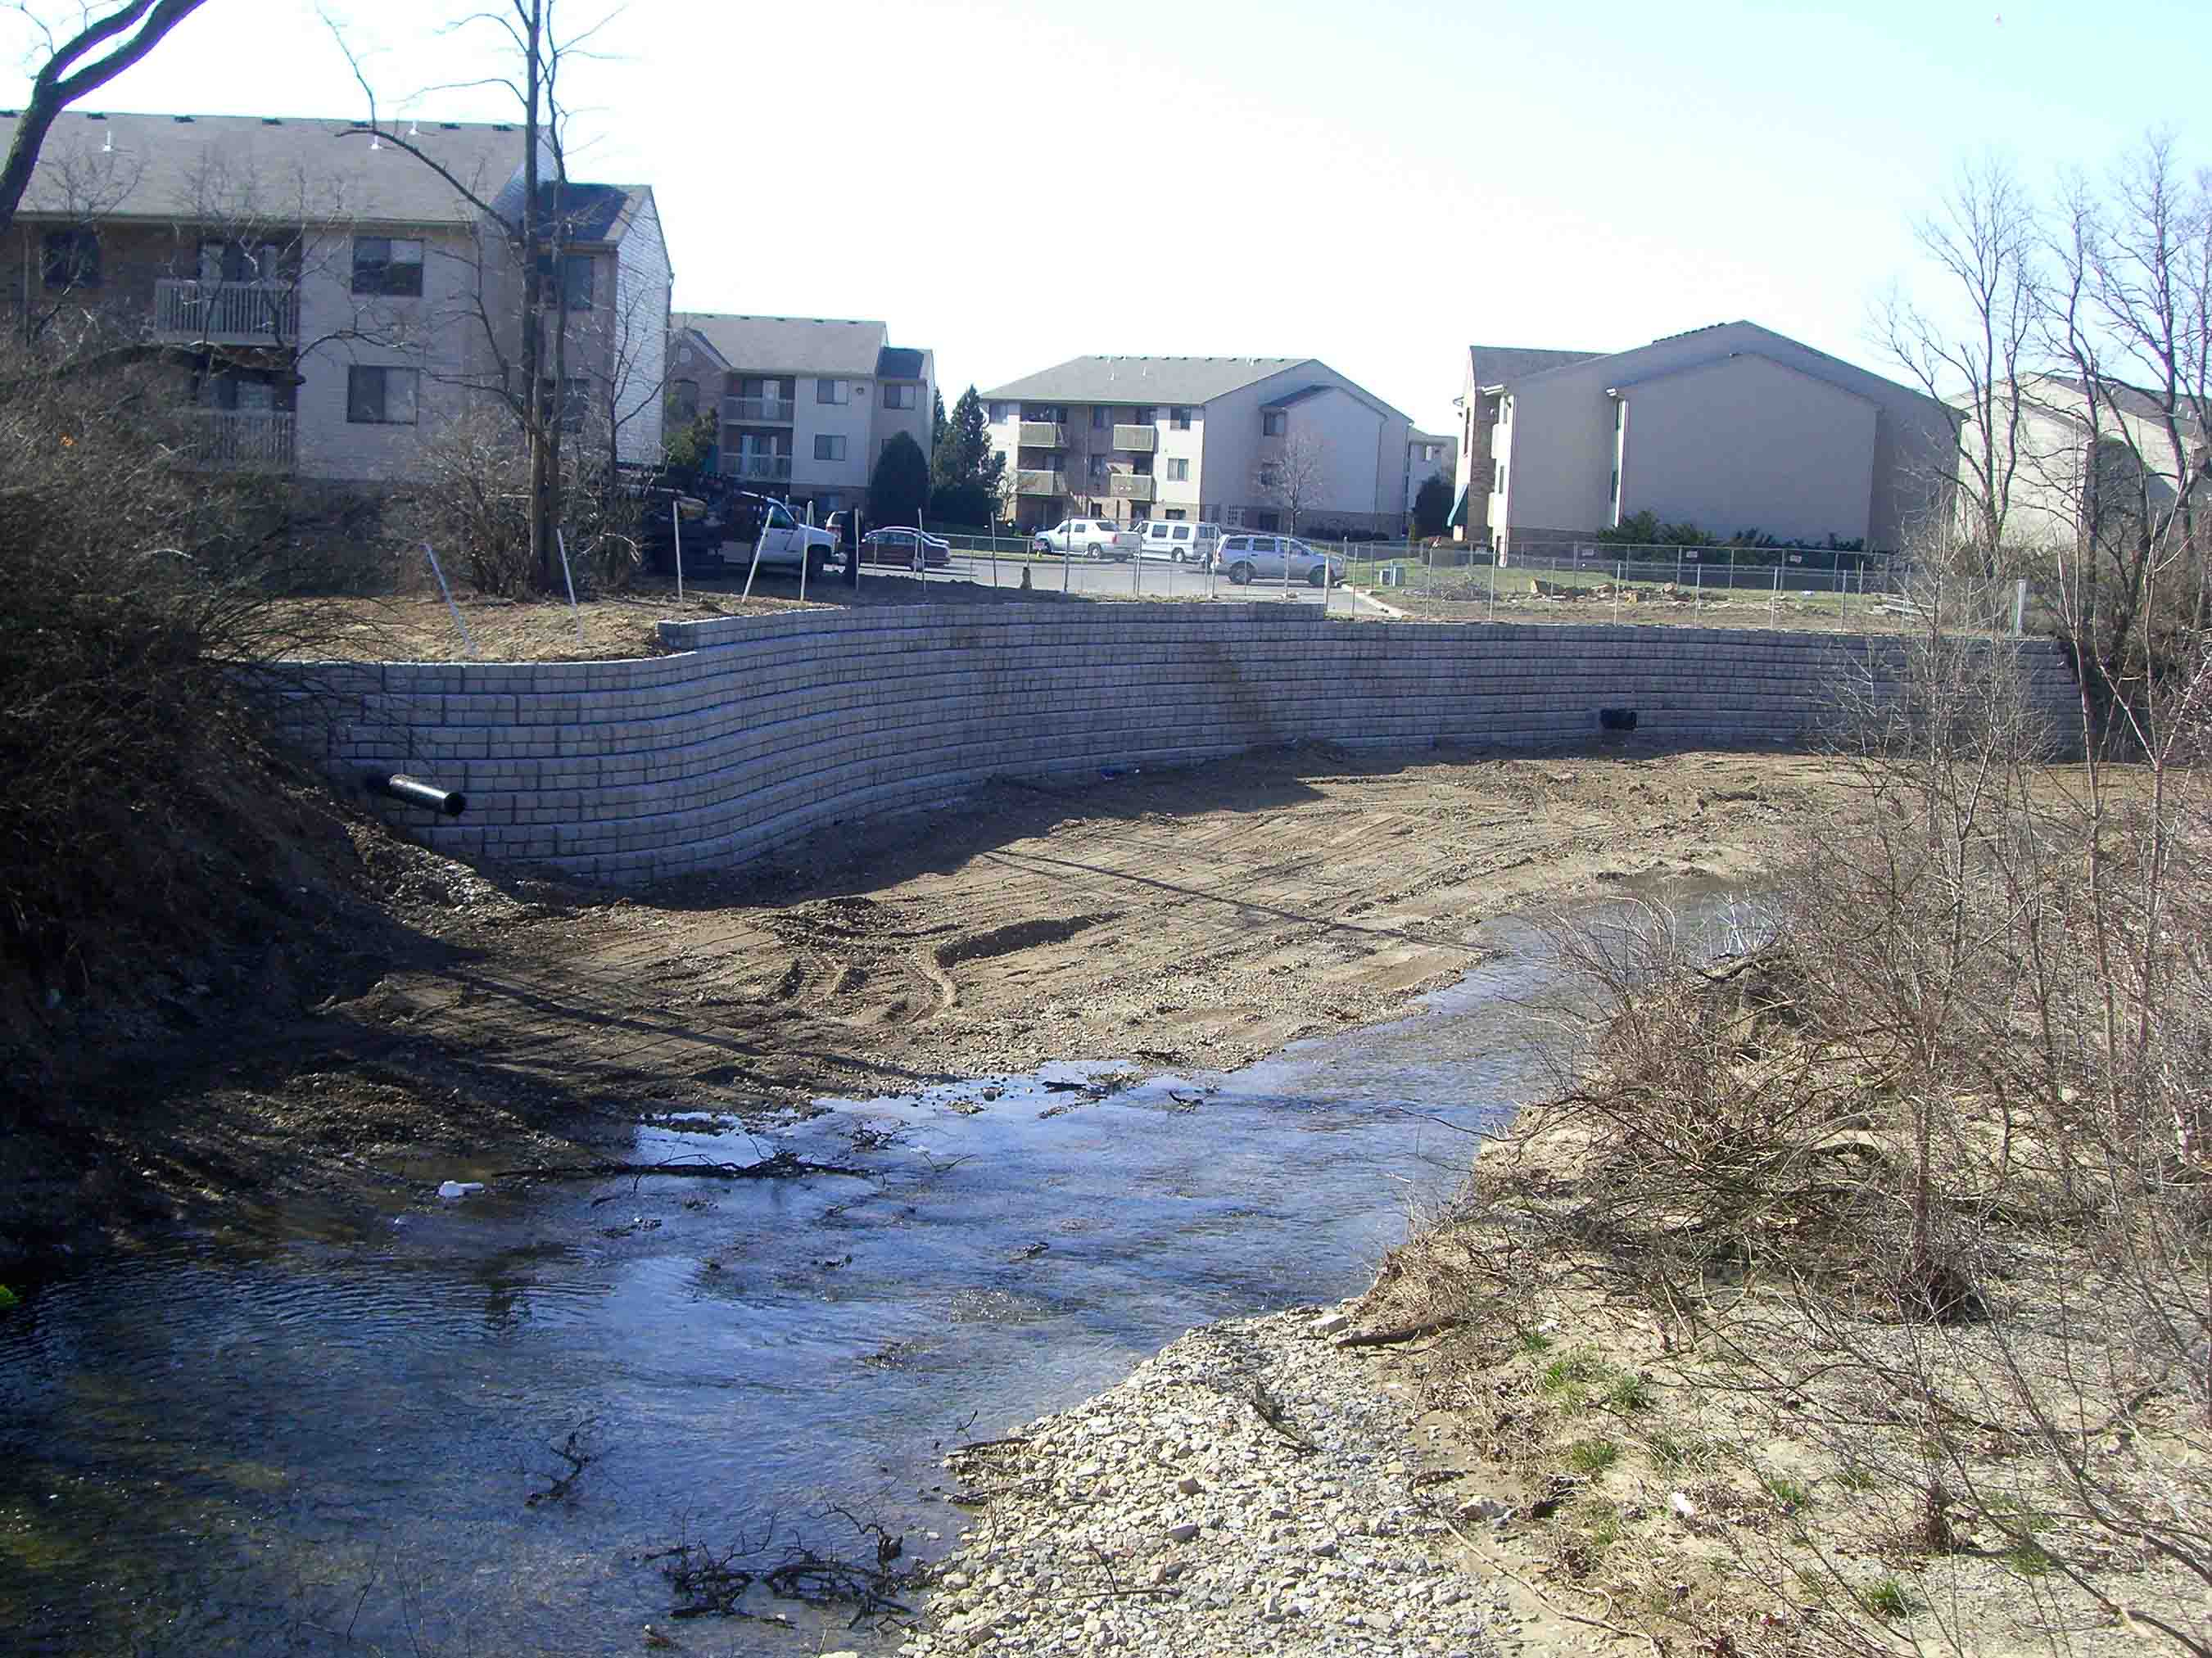 Cobblestone retaining wall built for erosion control at apartment complex